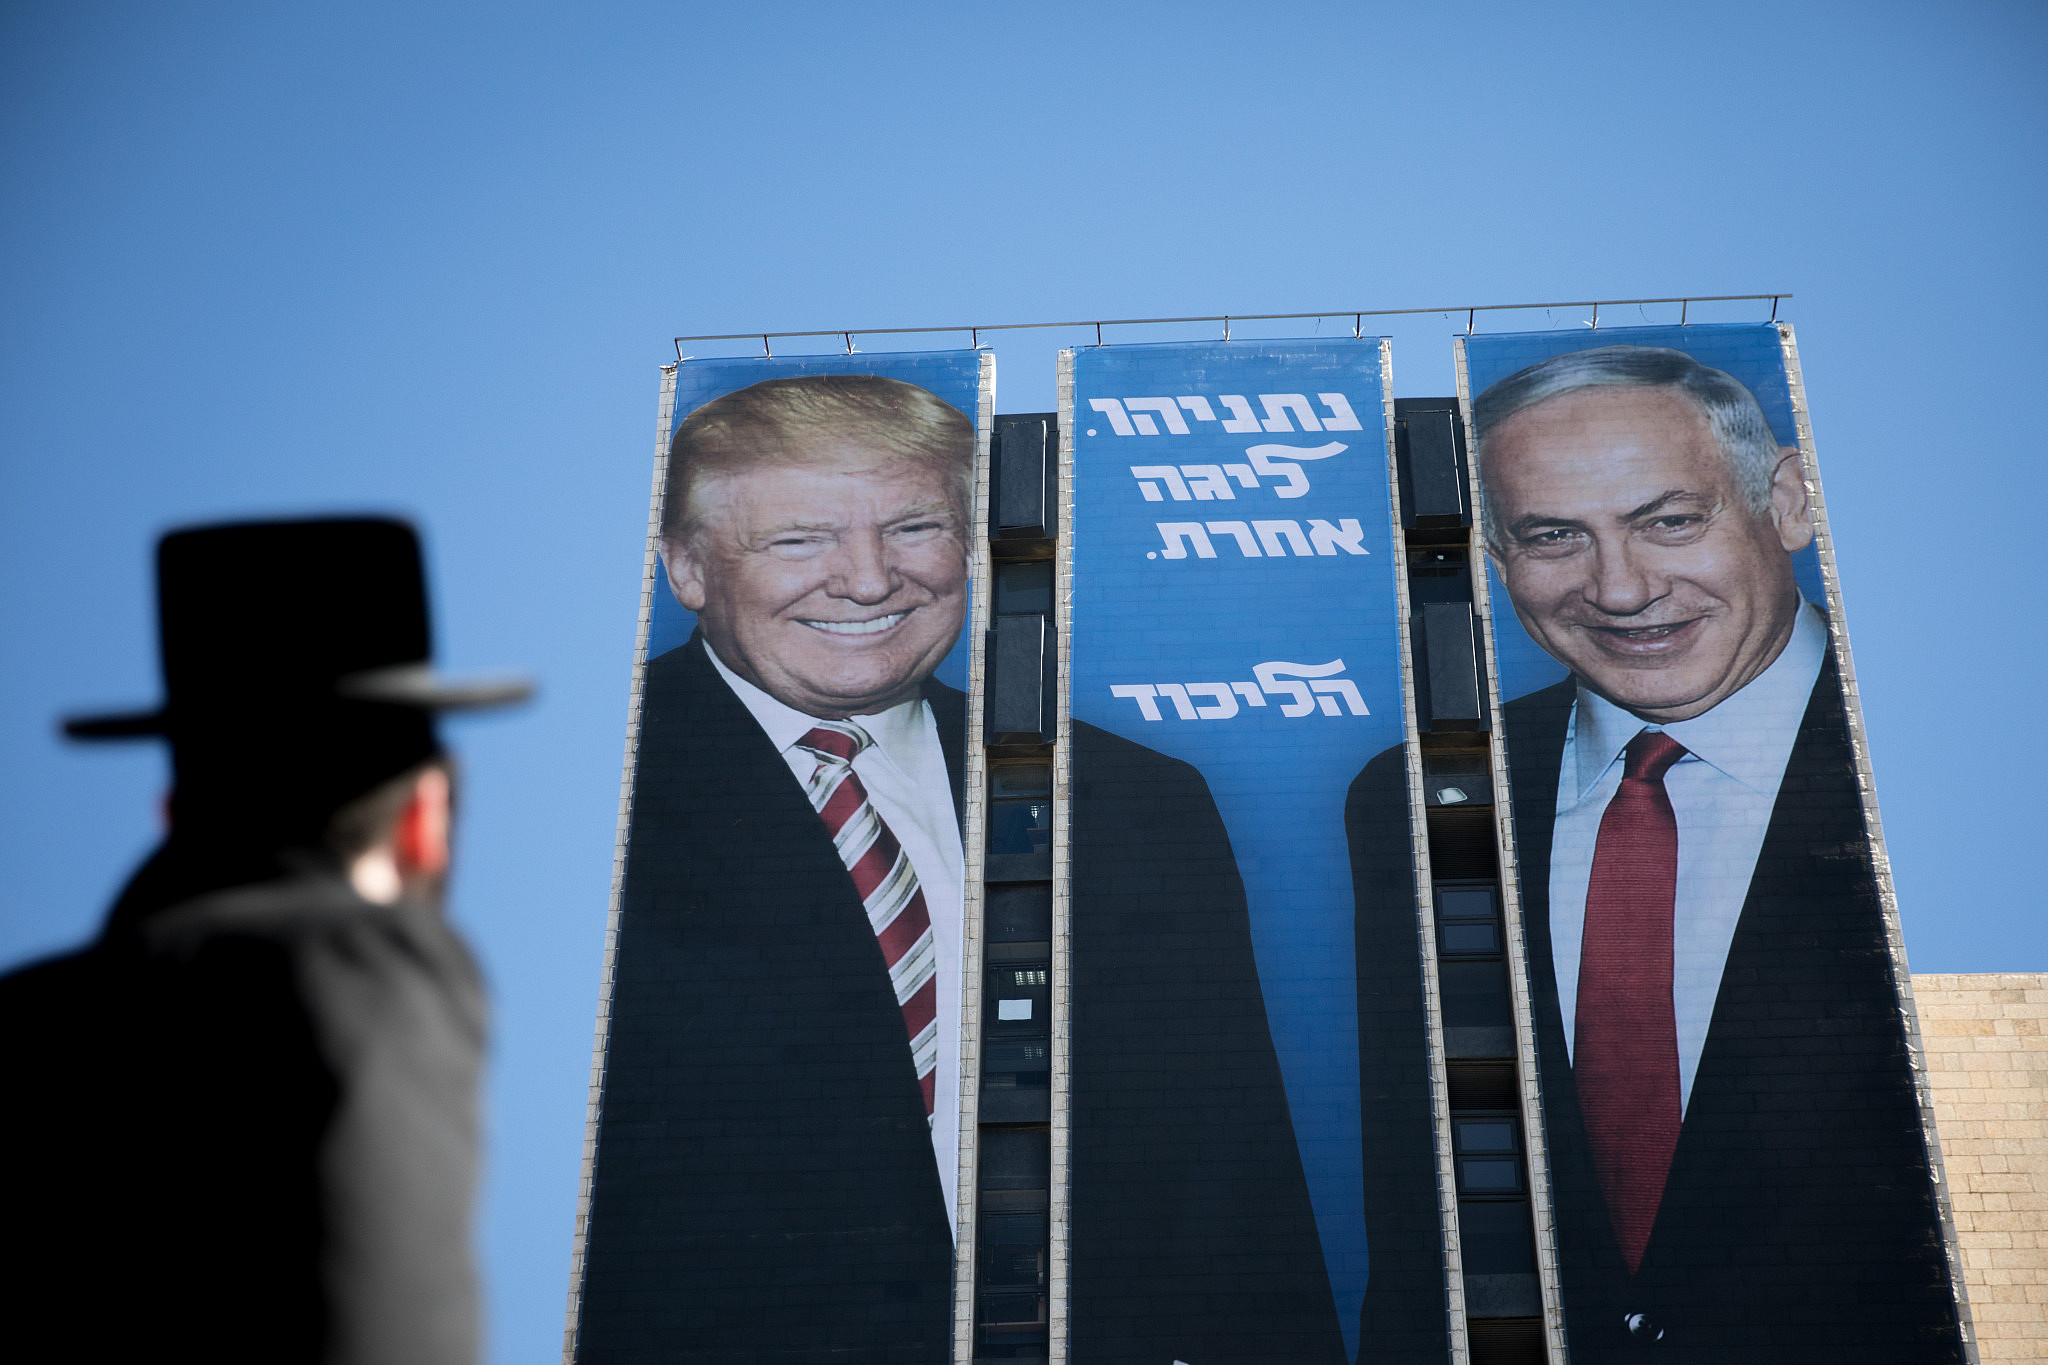 An ultra-Orthodox Jewish man looks at a large billboard of U.S. President Donald Trump and Israeli Prime Minister Benjamin Netanyahu, as part of the Likud election campaign, at the entrance to Jerusalem, Feb. 3, 2019. (Yonatan Sindel/Flash90)